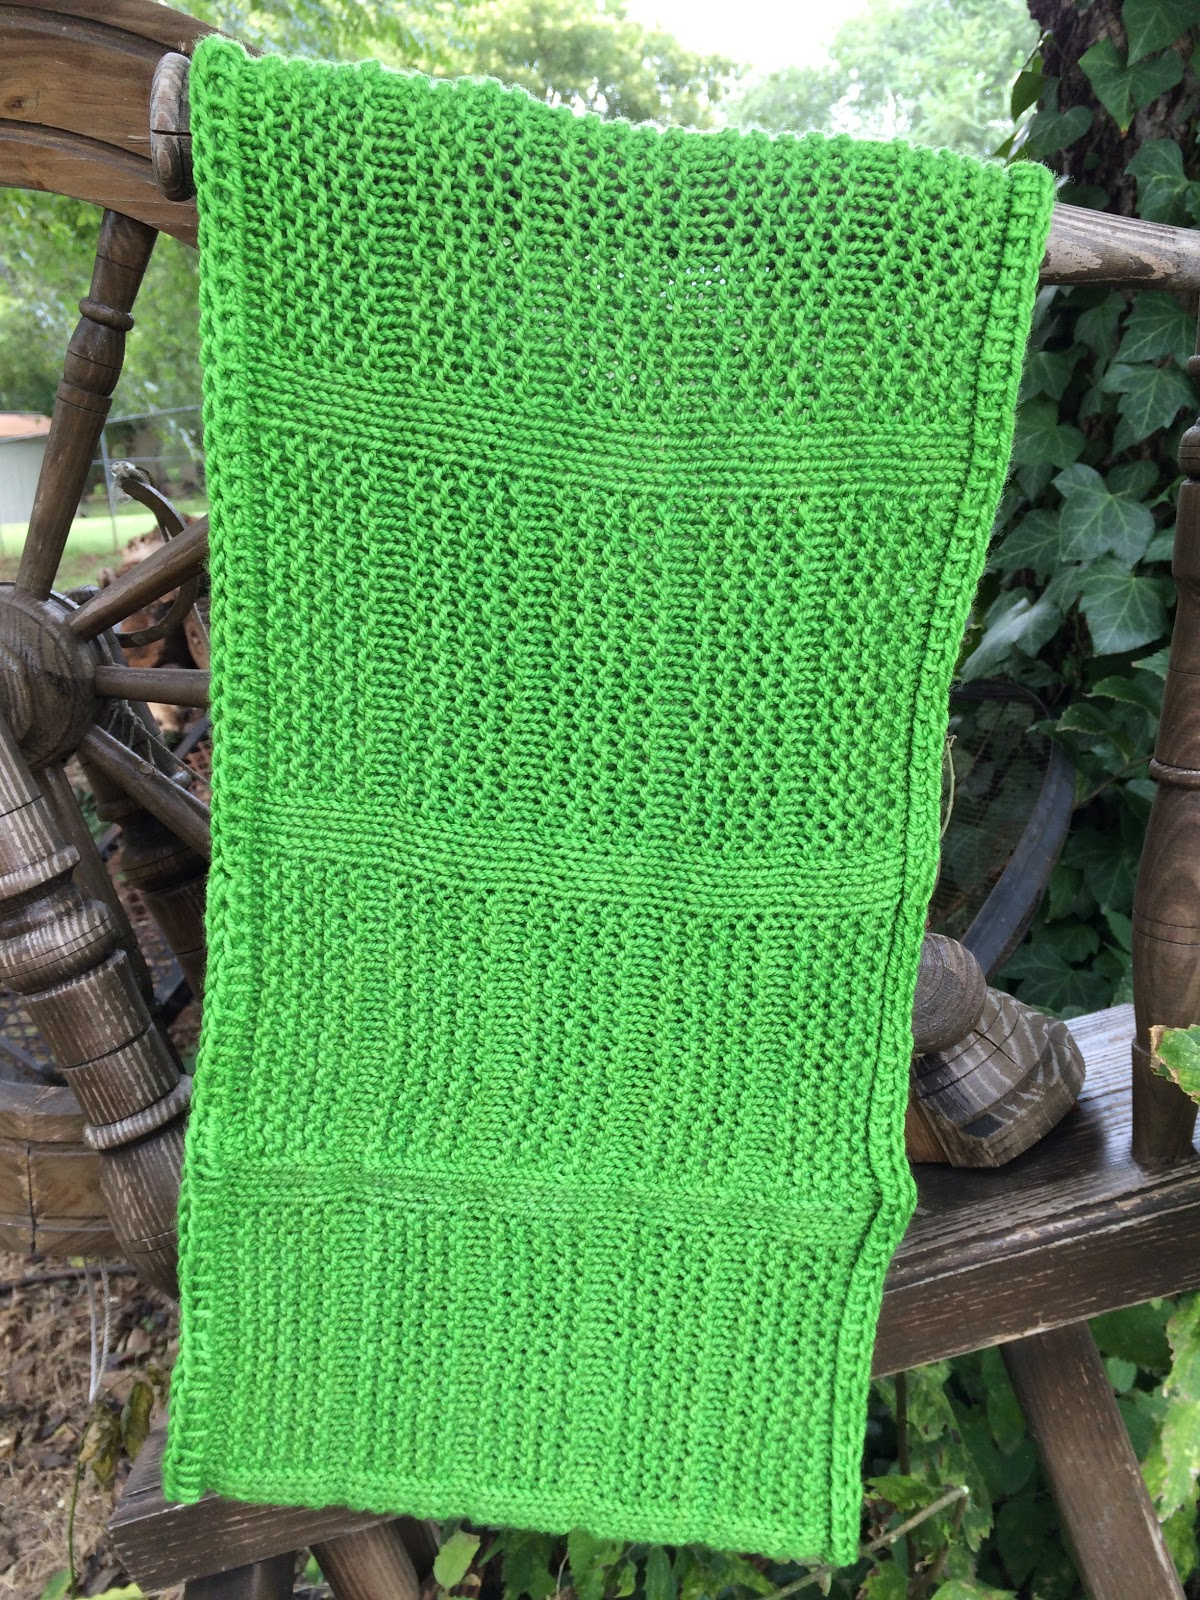 Get this easy cowl knitting pattern free with email subscription from Banana Moon Studio!